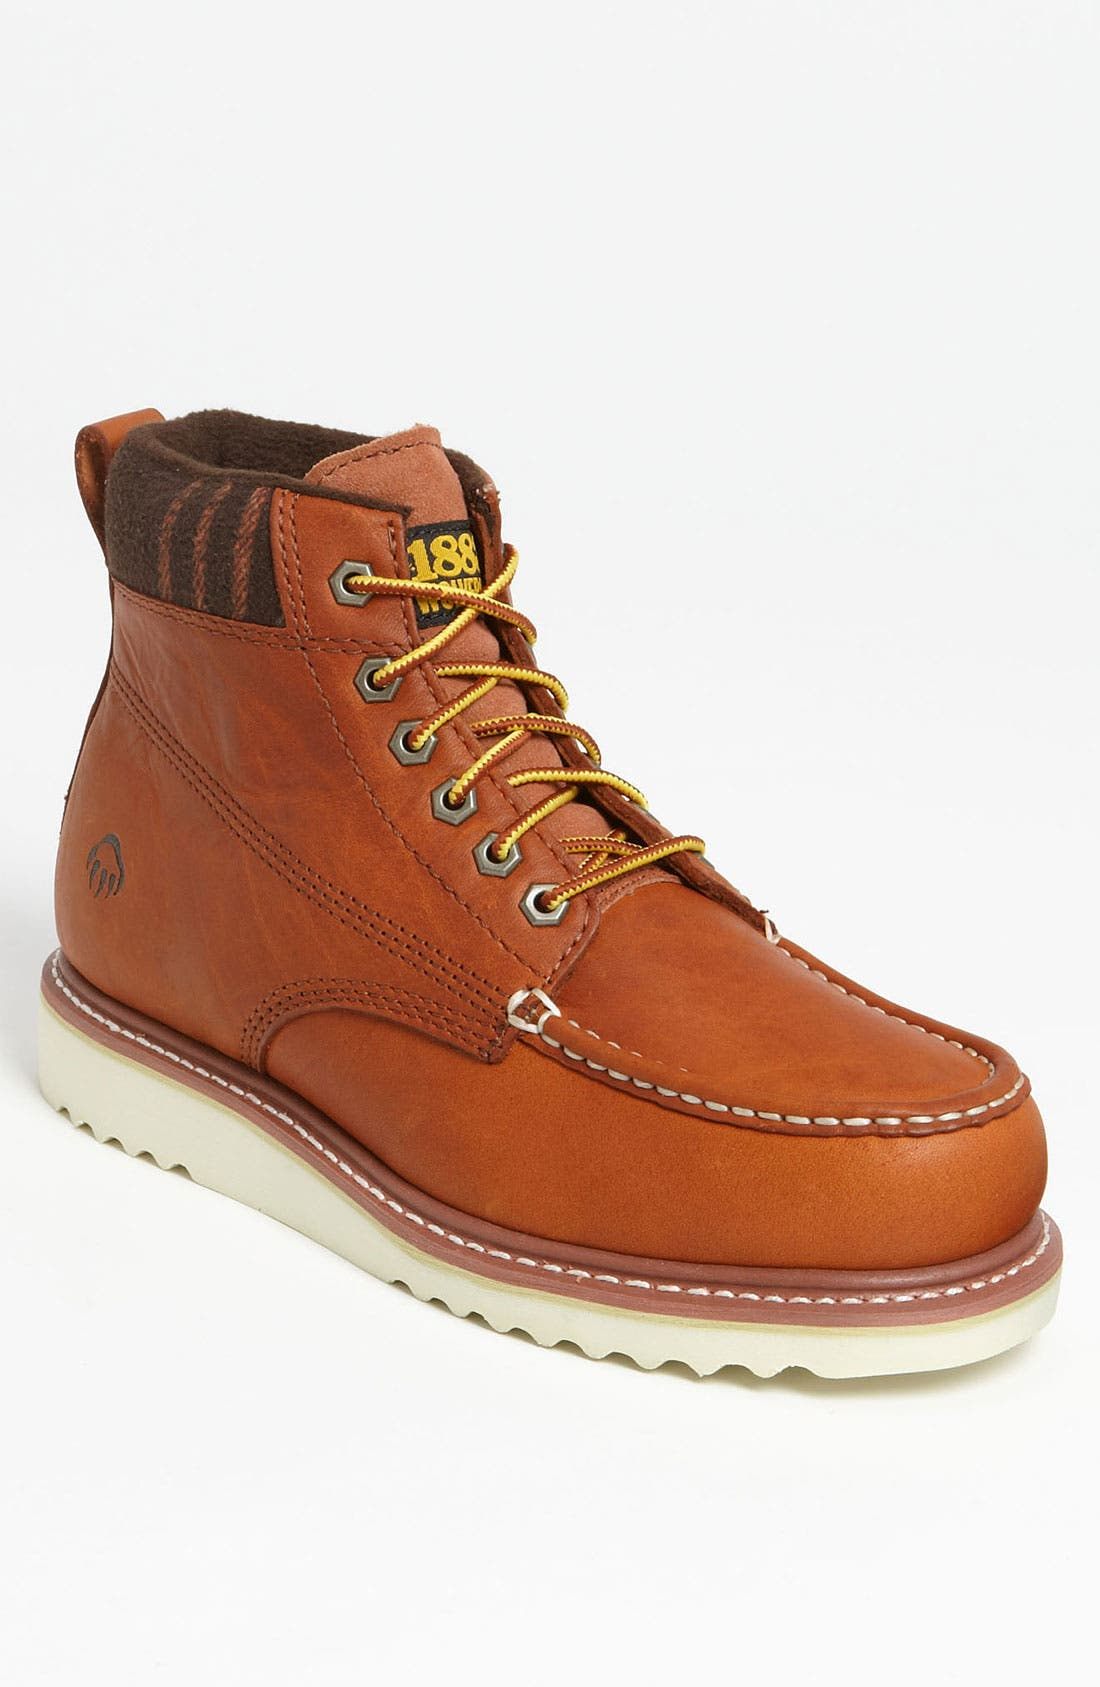 Alternate Image 1 Selected - Wolverine '1883 - Shindell' Moc Toe Boot